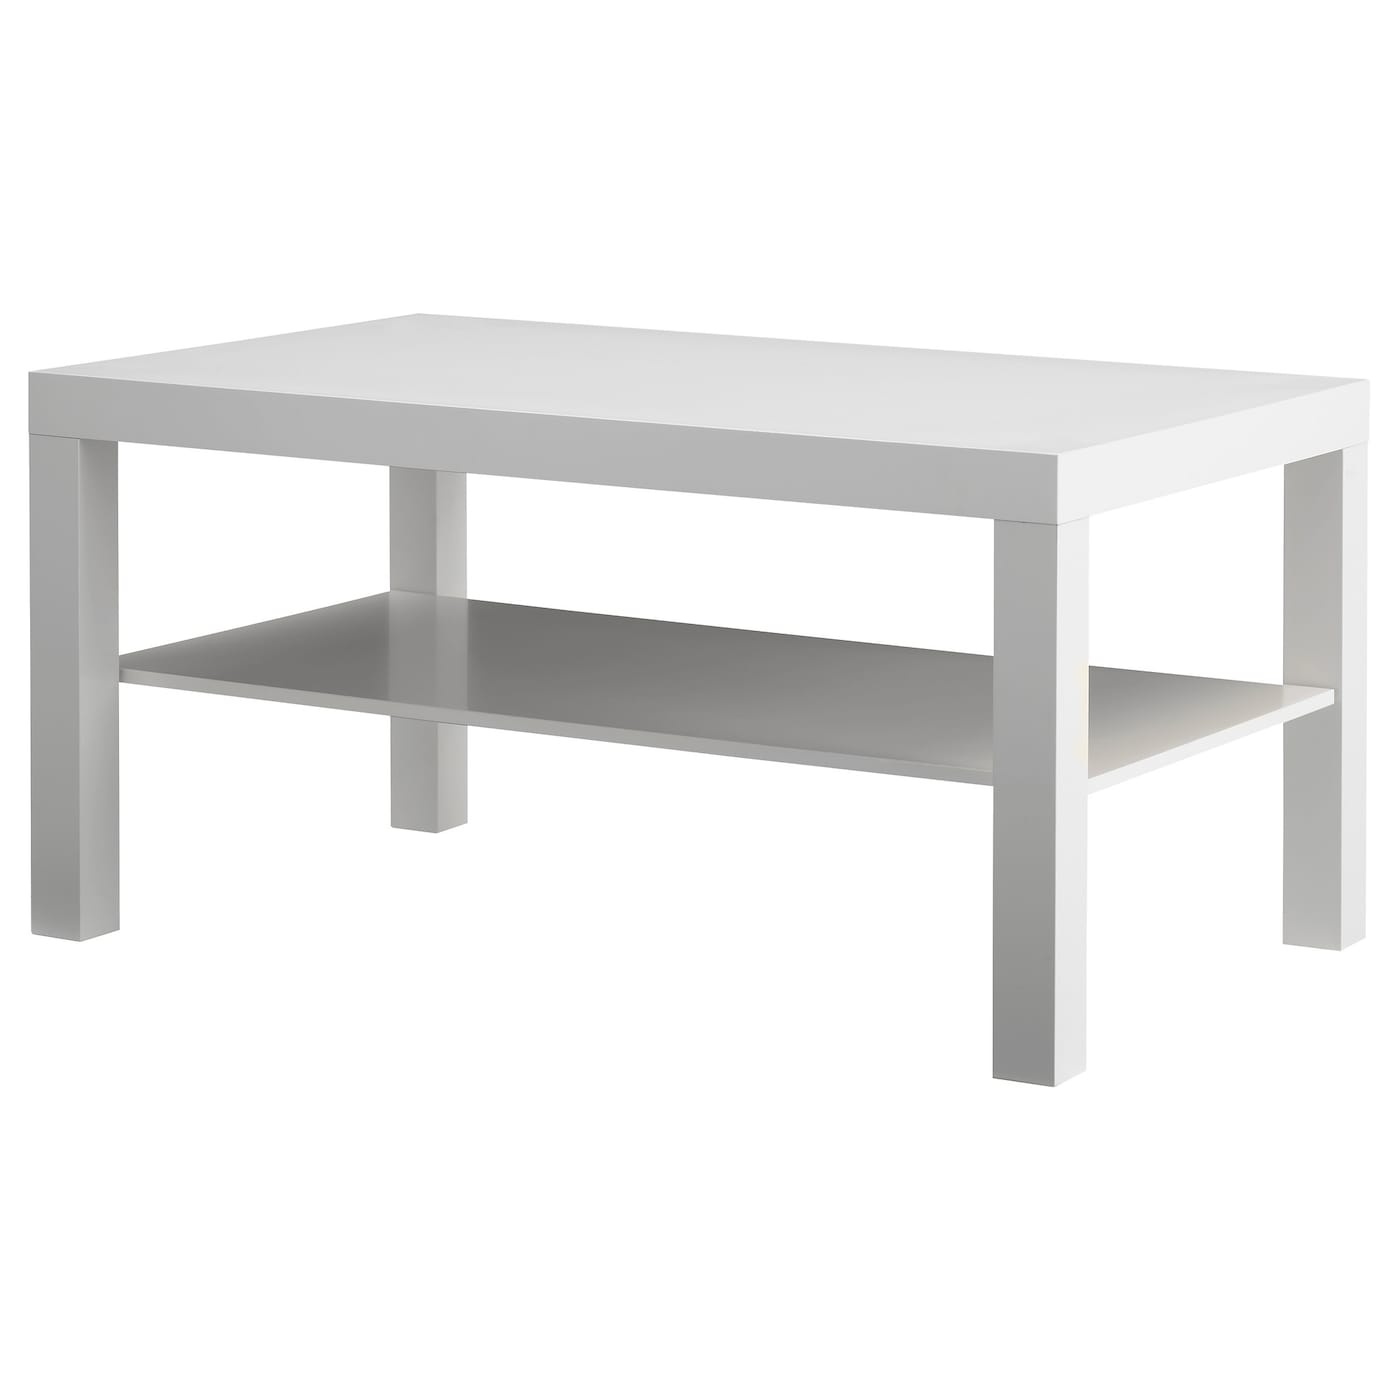 Lack coffee table white 90x55 cm ikea for Ikea table basse relevable